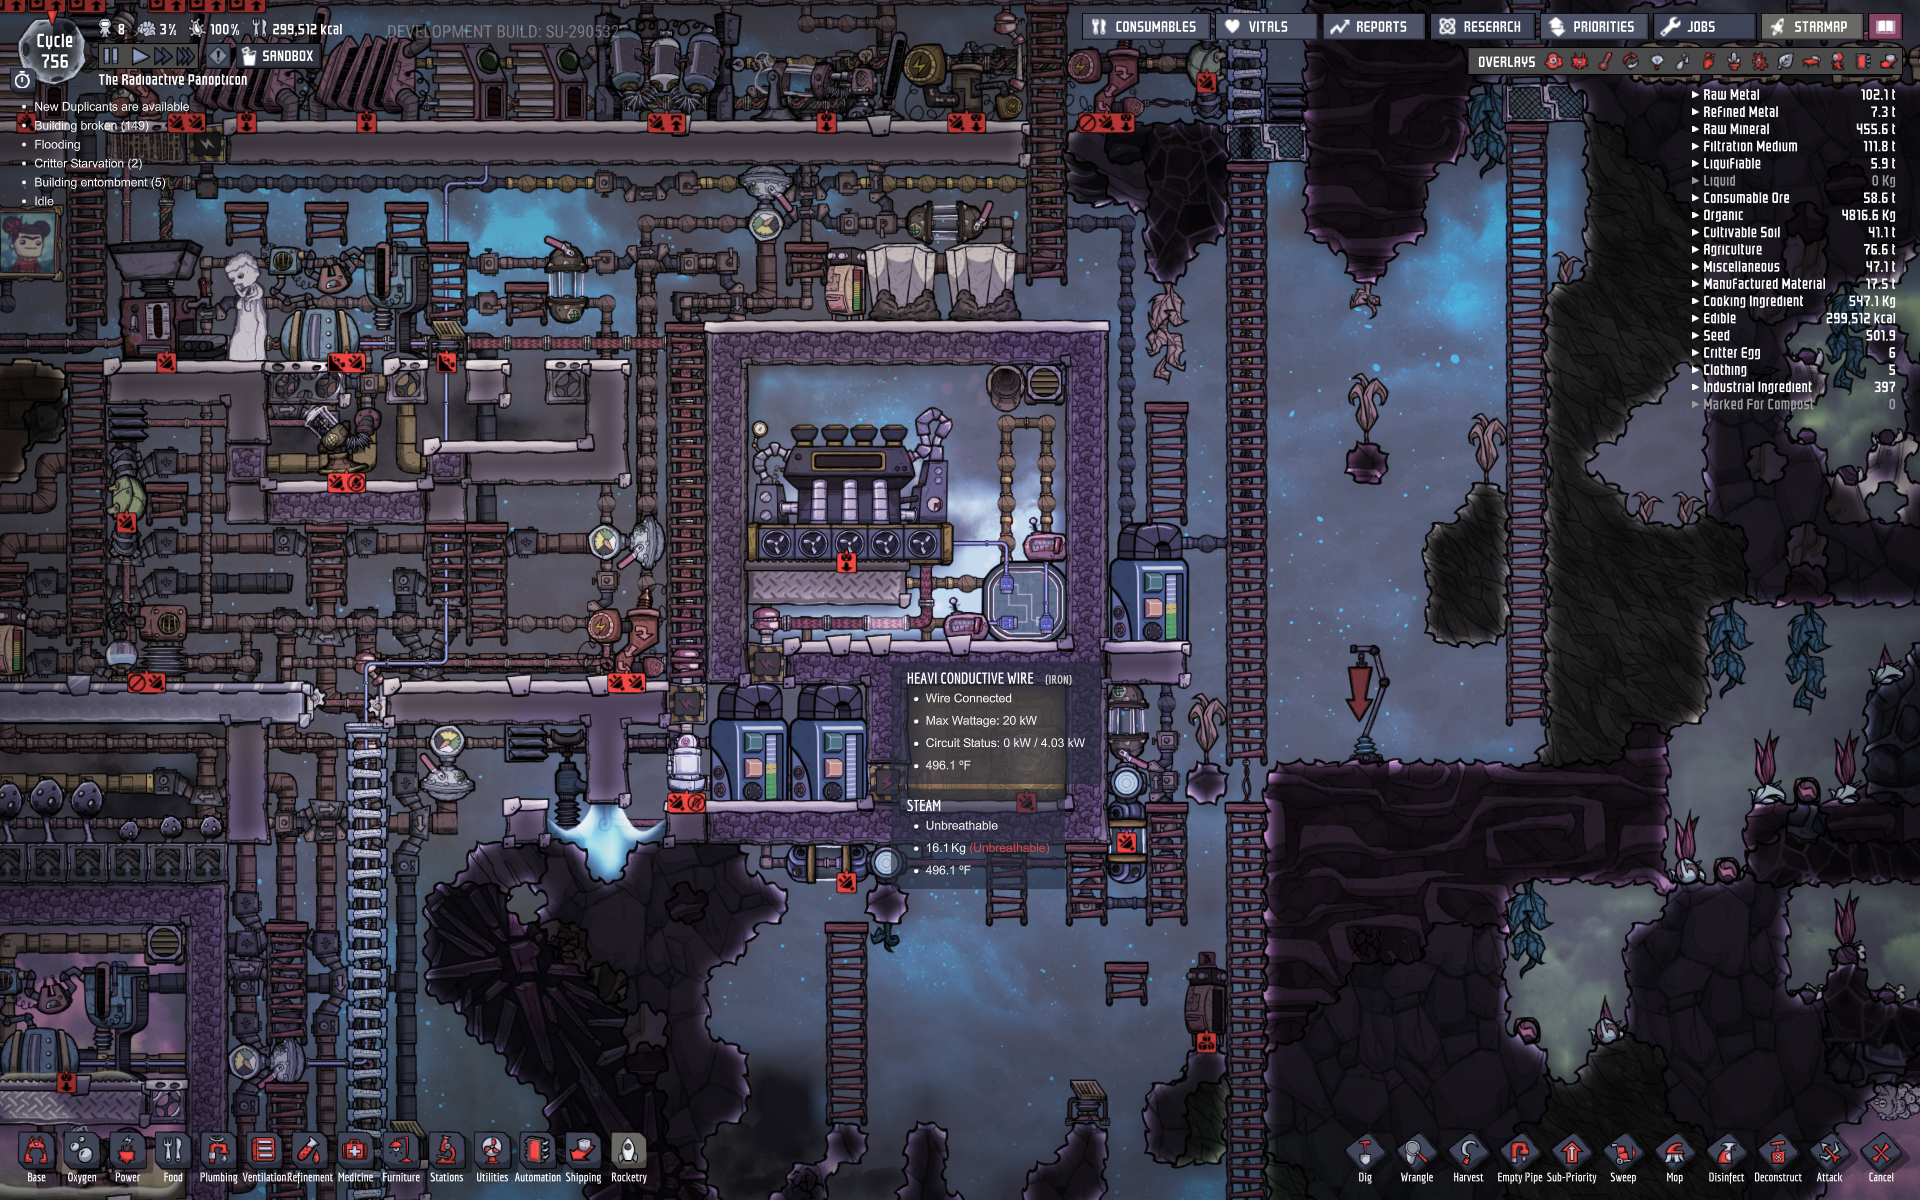 Steam turbine deletes steam - Oxygen Not Included - [Early Access